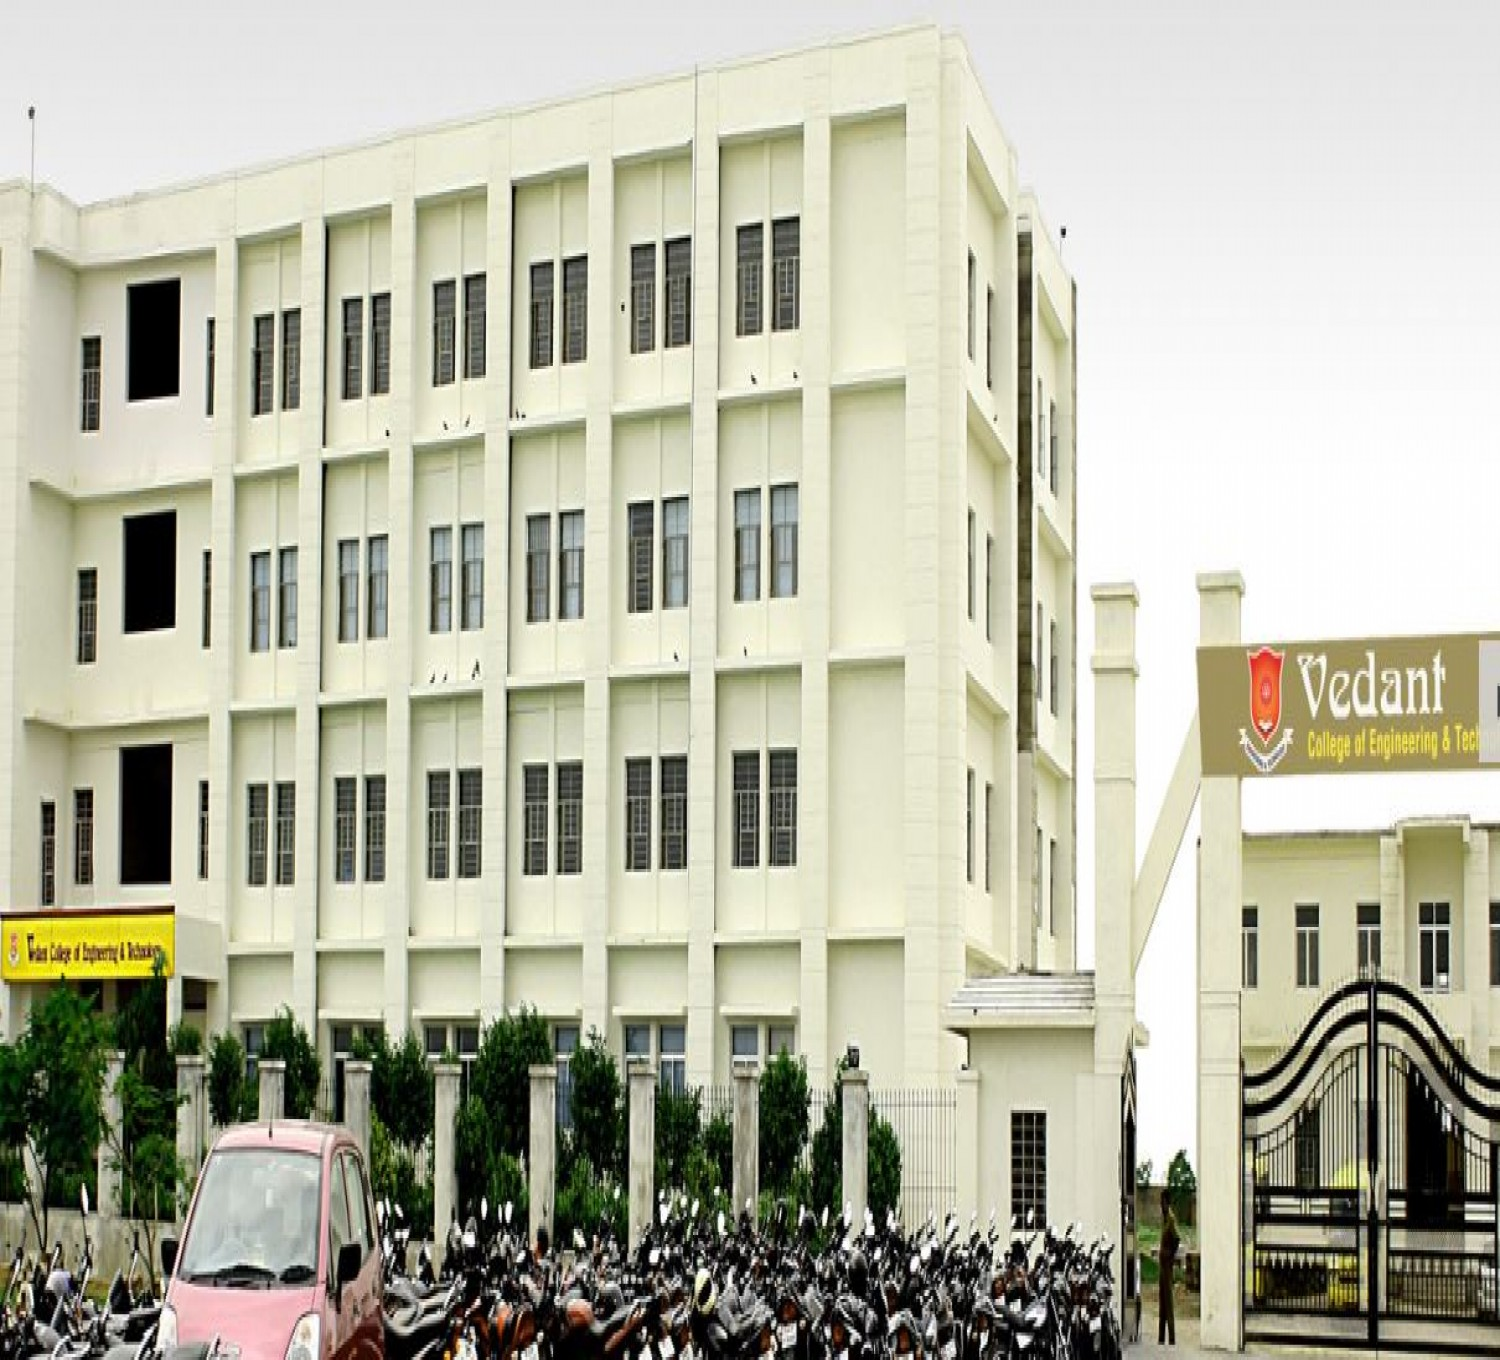 Vedant College Of Engineering And Technology-cover